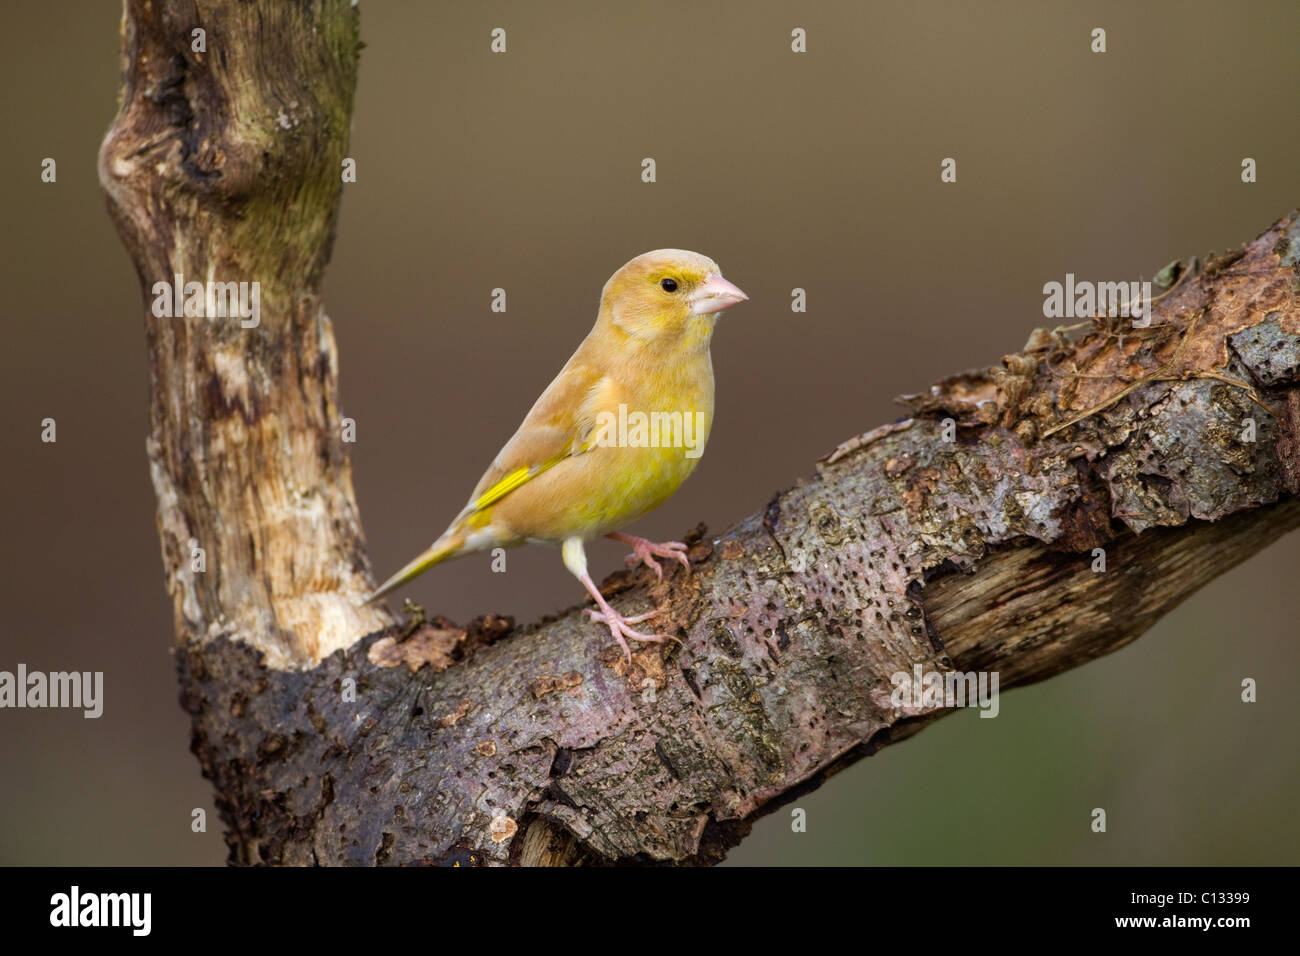 Green Finch Carduelis chloris abnormal feather variation - Stock Image